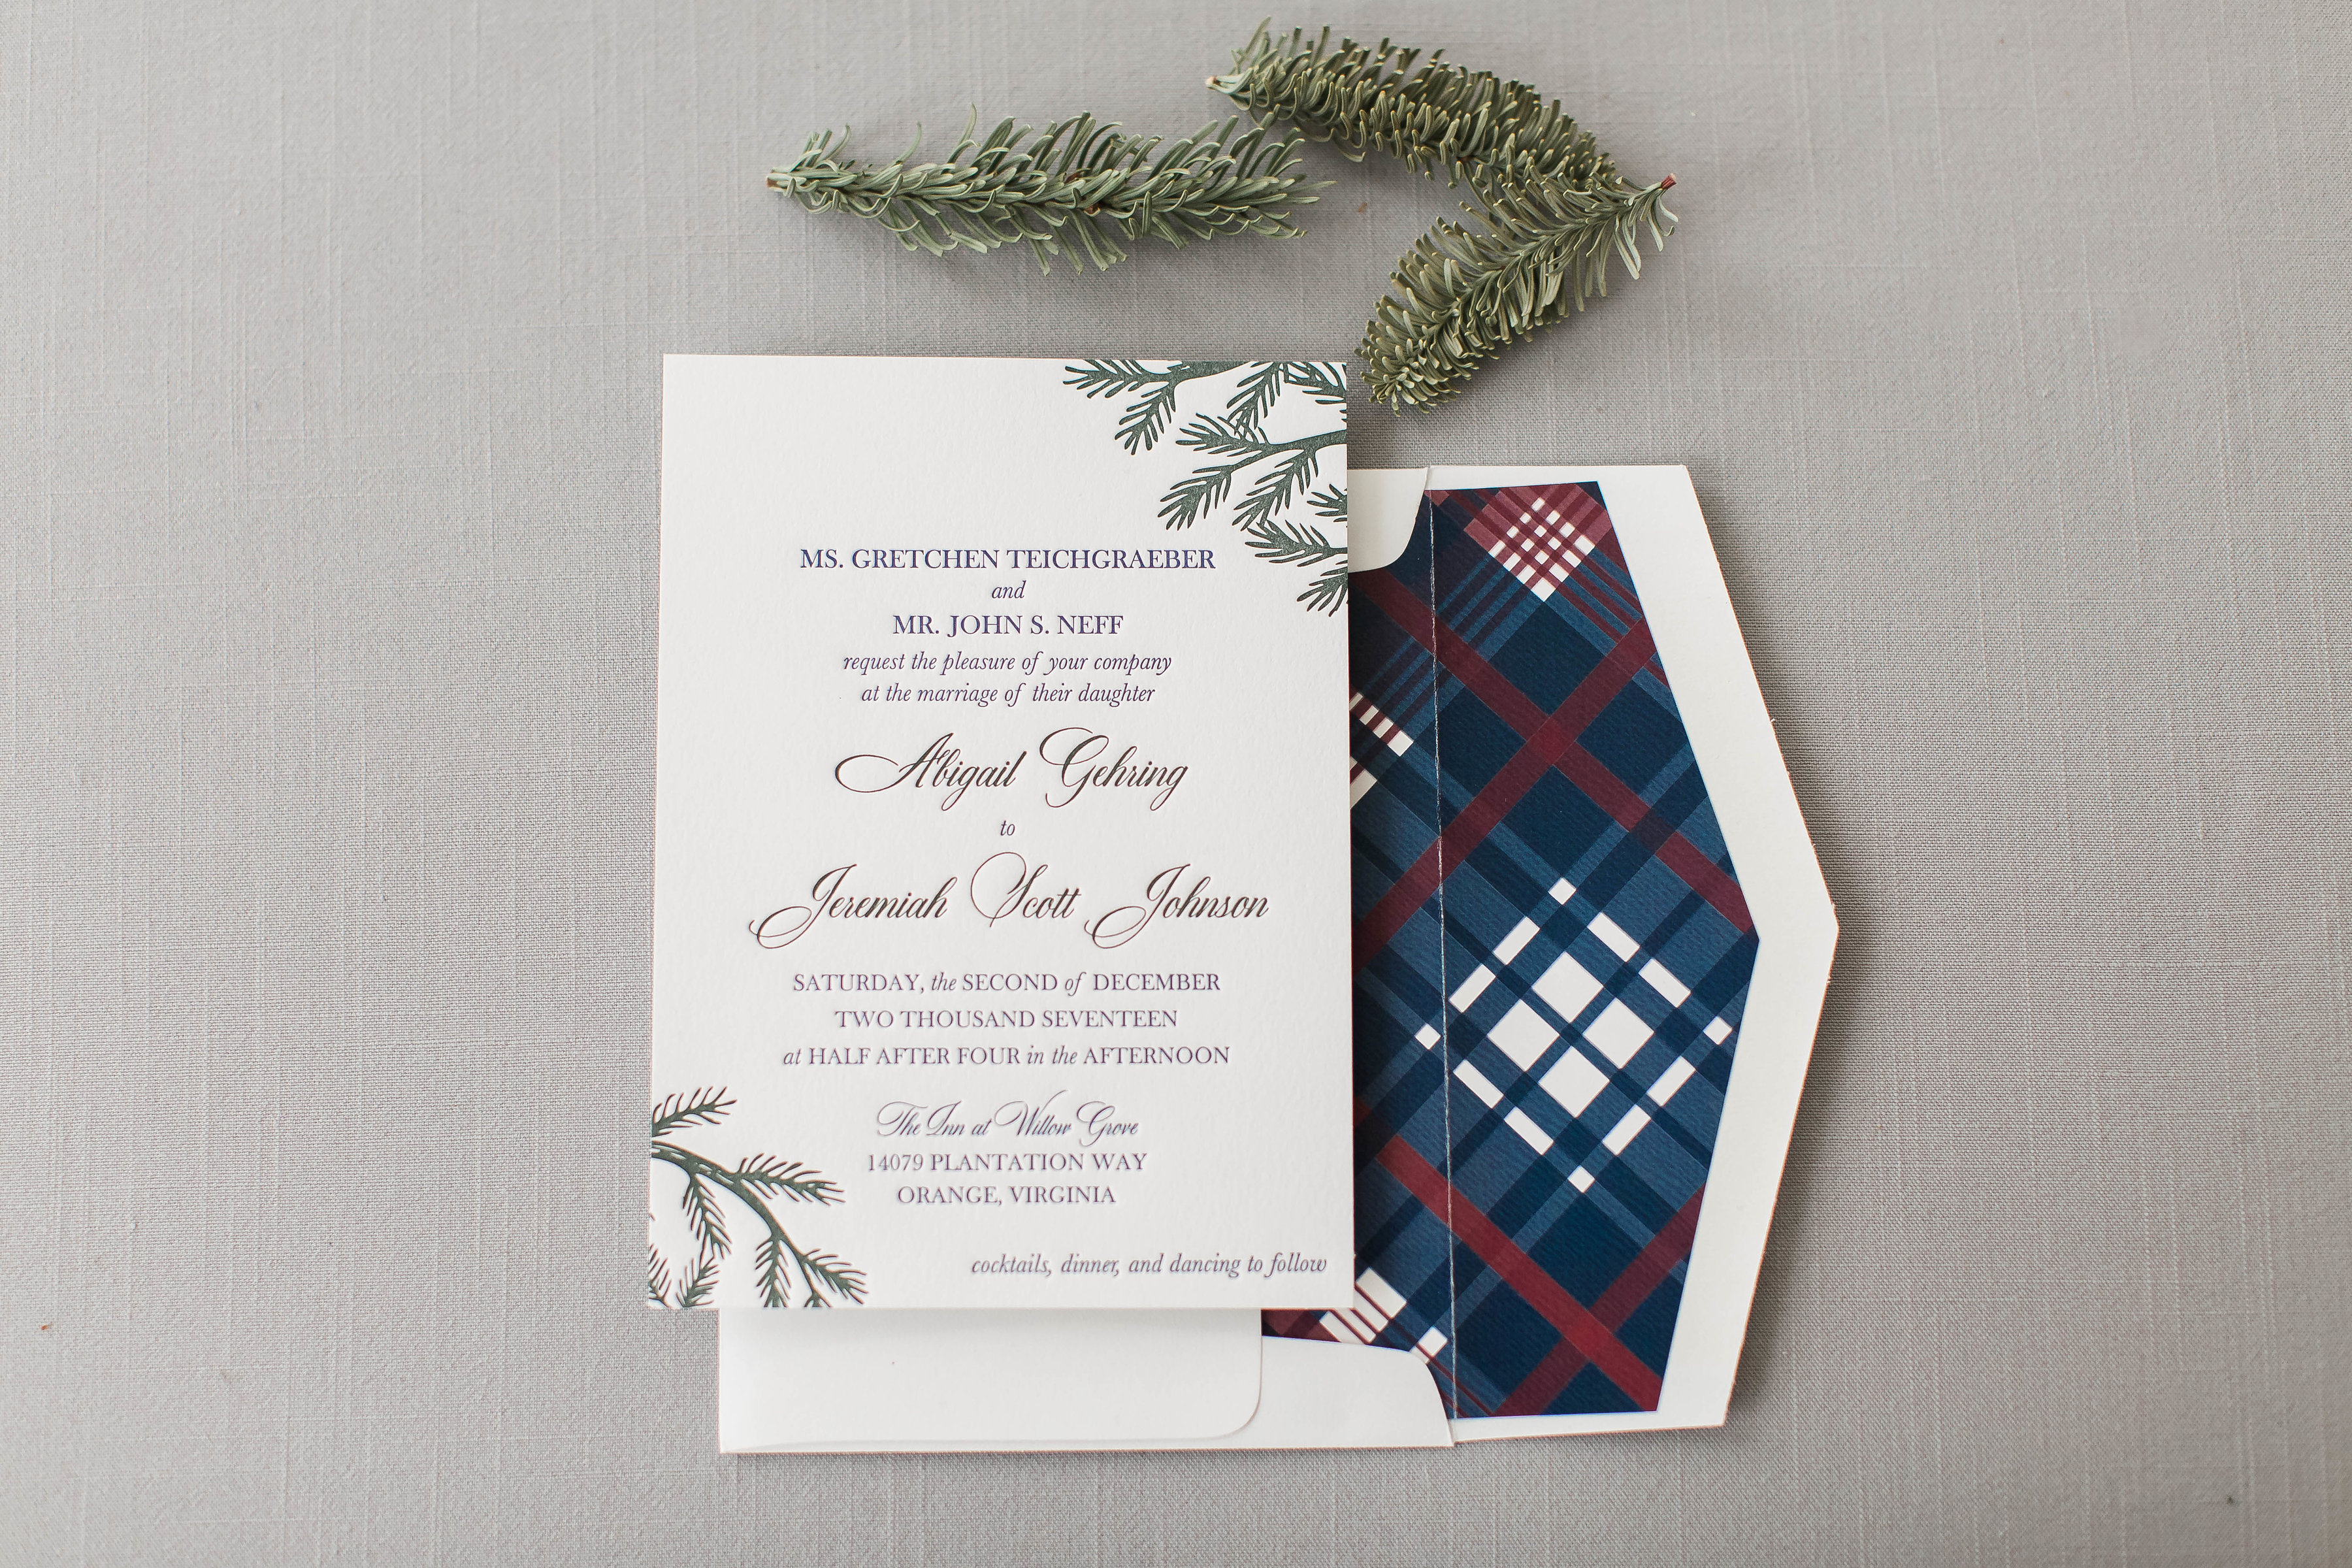 Custom letterpress wedding invitations feature olive evergreen branches and a blue and red plaid envelope liner.